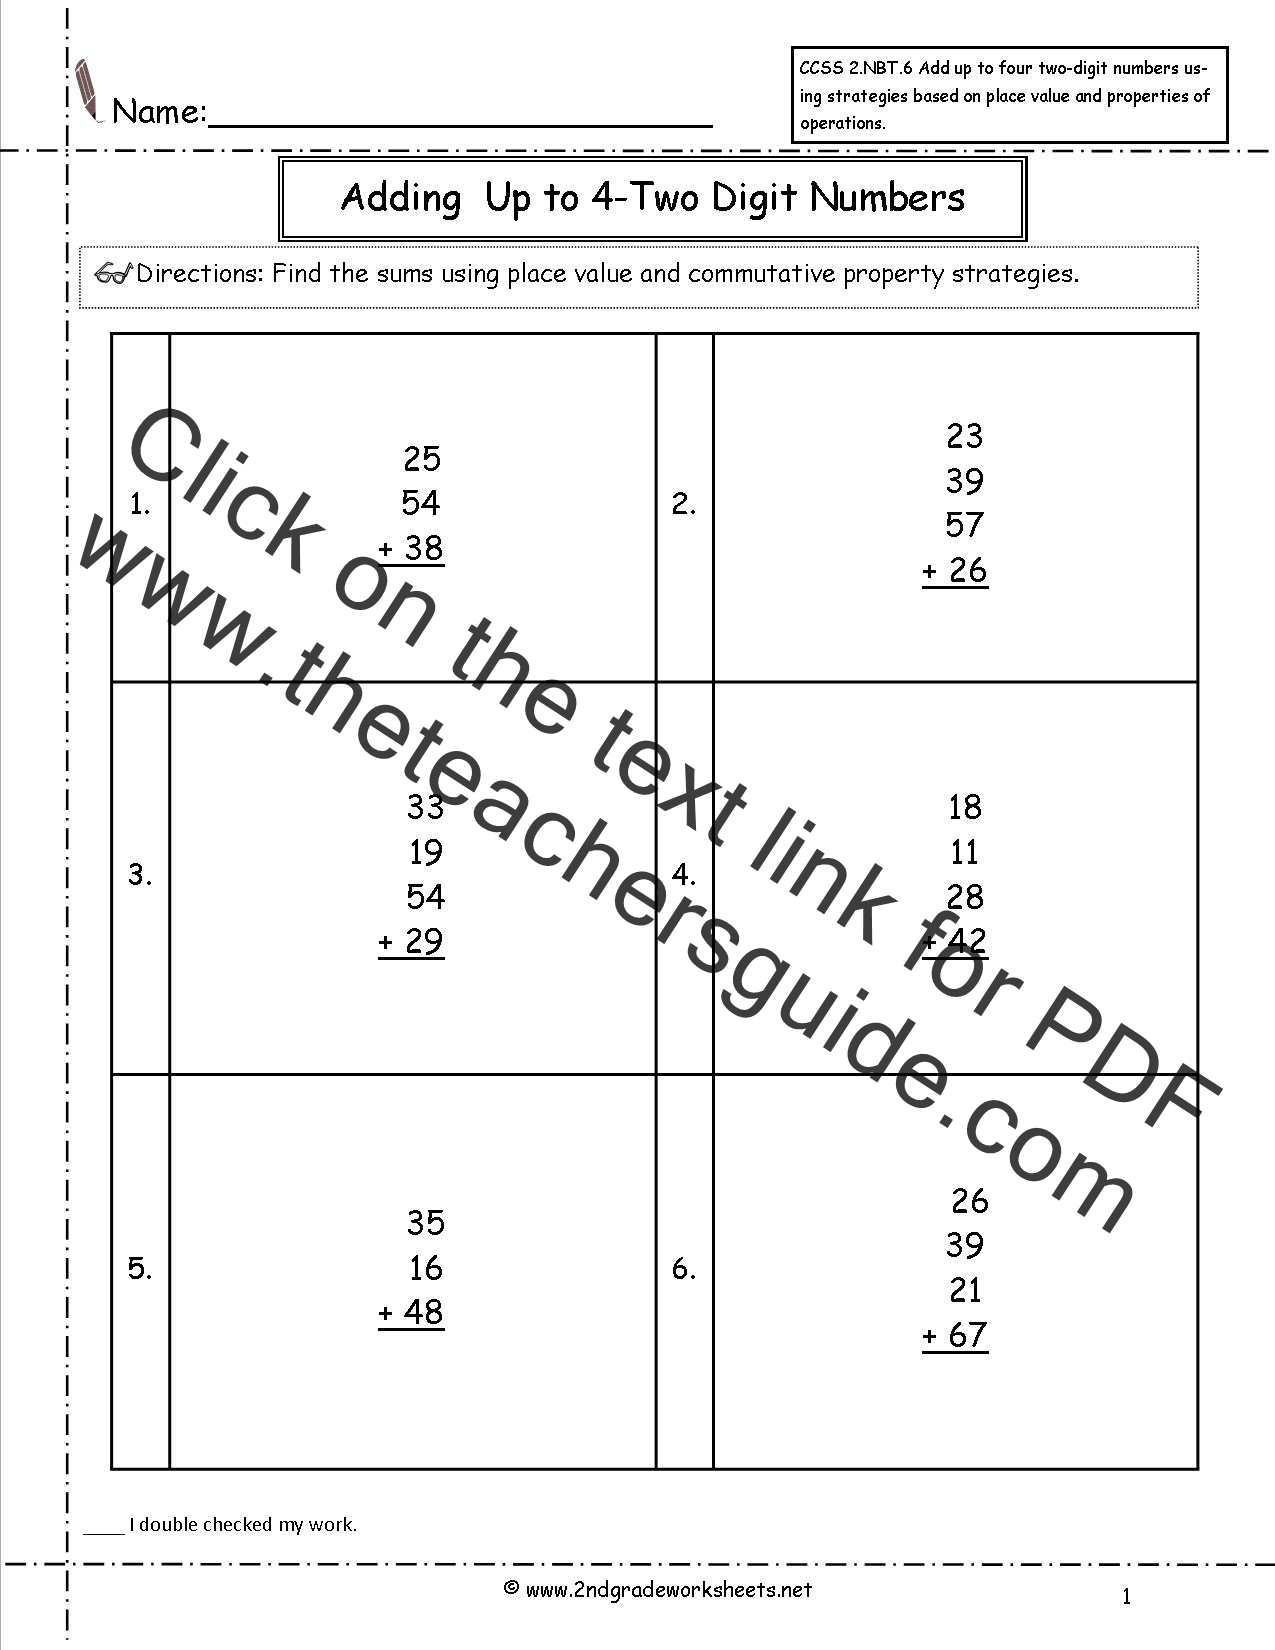 CCSS 2.NBT.6 Worksheets. Adding up to Four 2-Digit Numbers ...